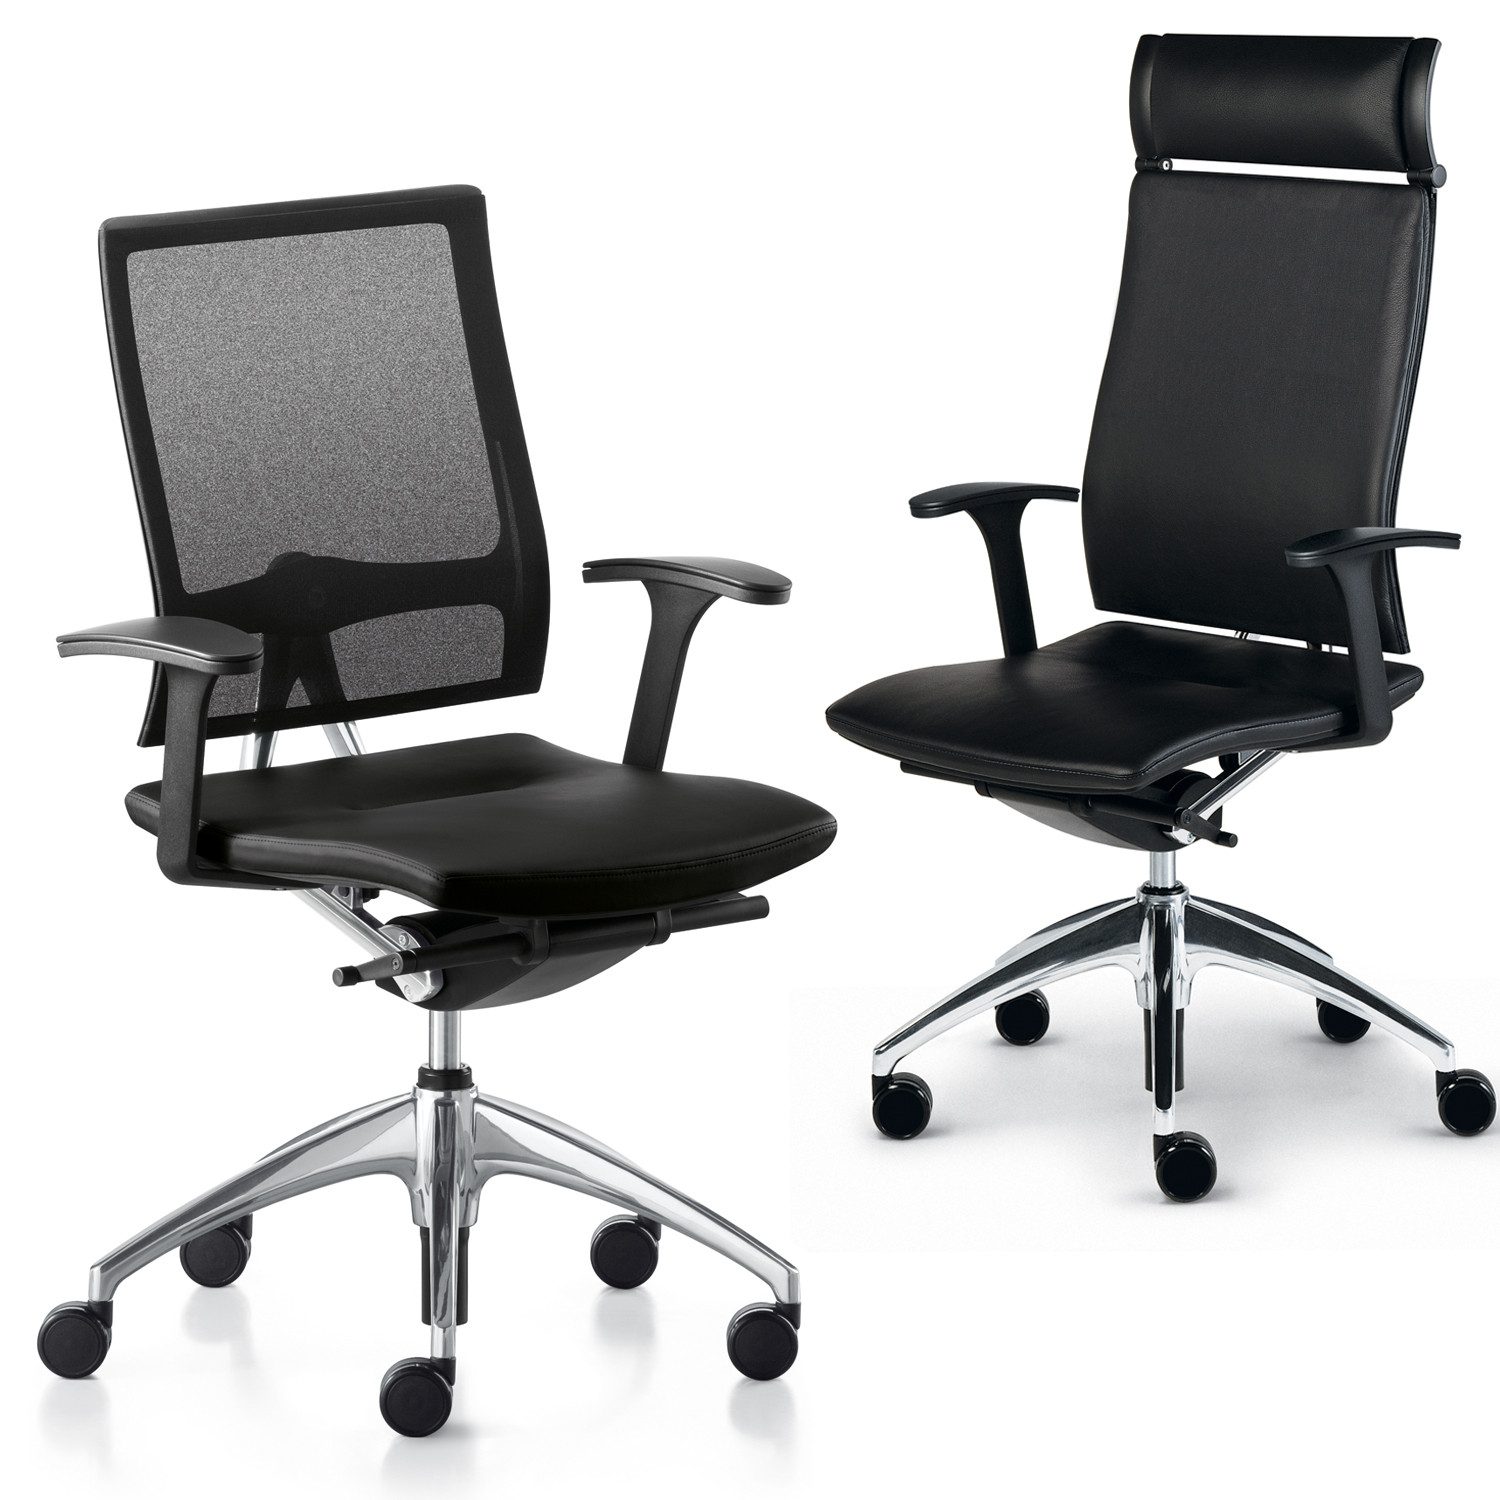 open up task chair ergonomic office chairs apres furniture. Black Bedroom Furniture Sets. Home Design Ideas